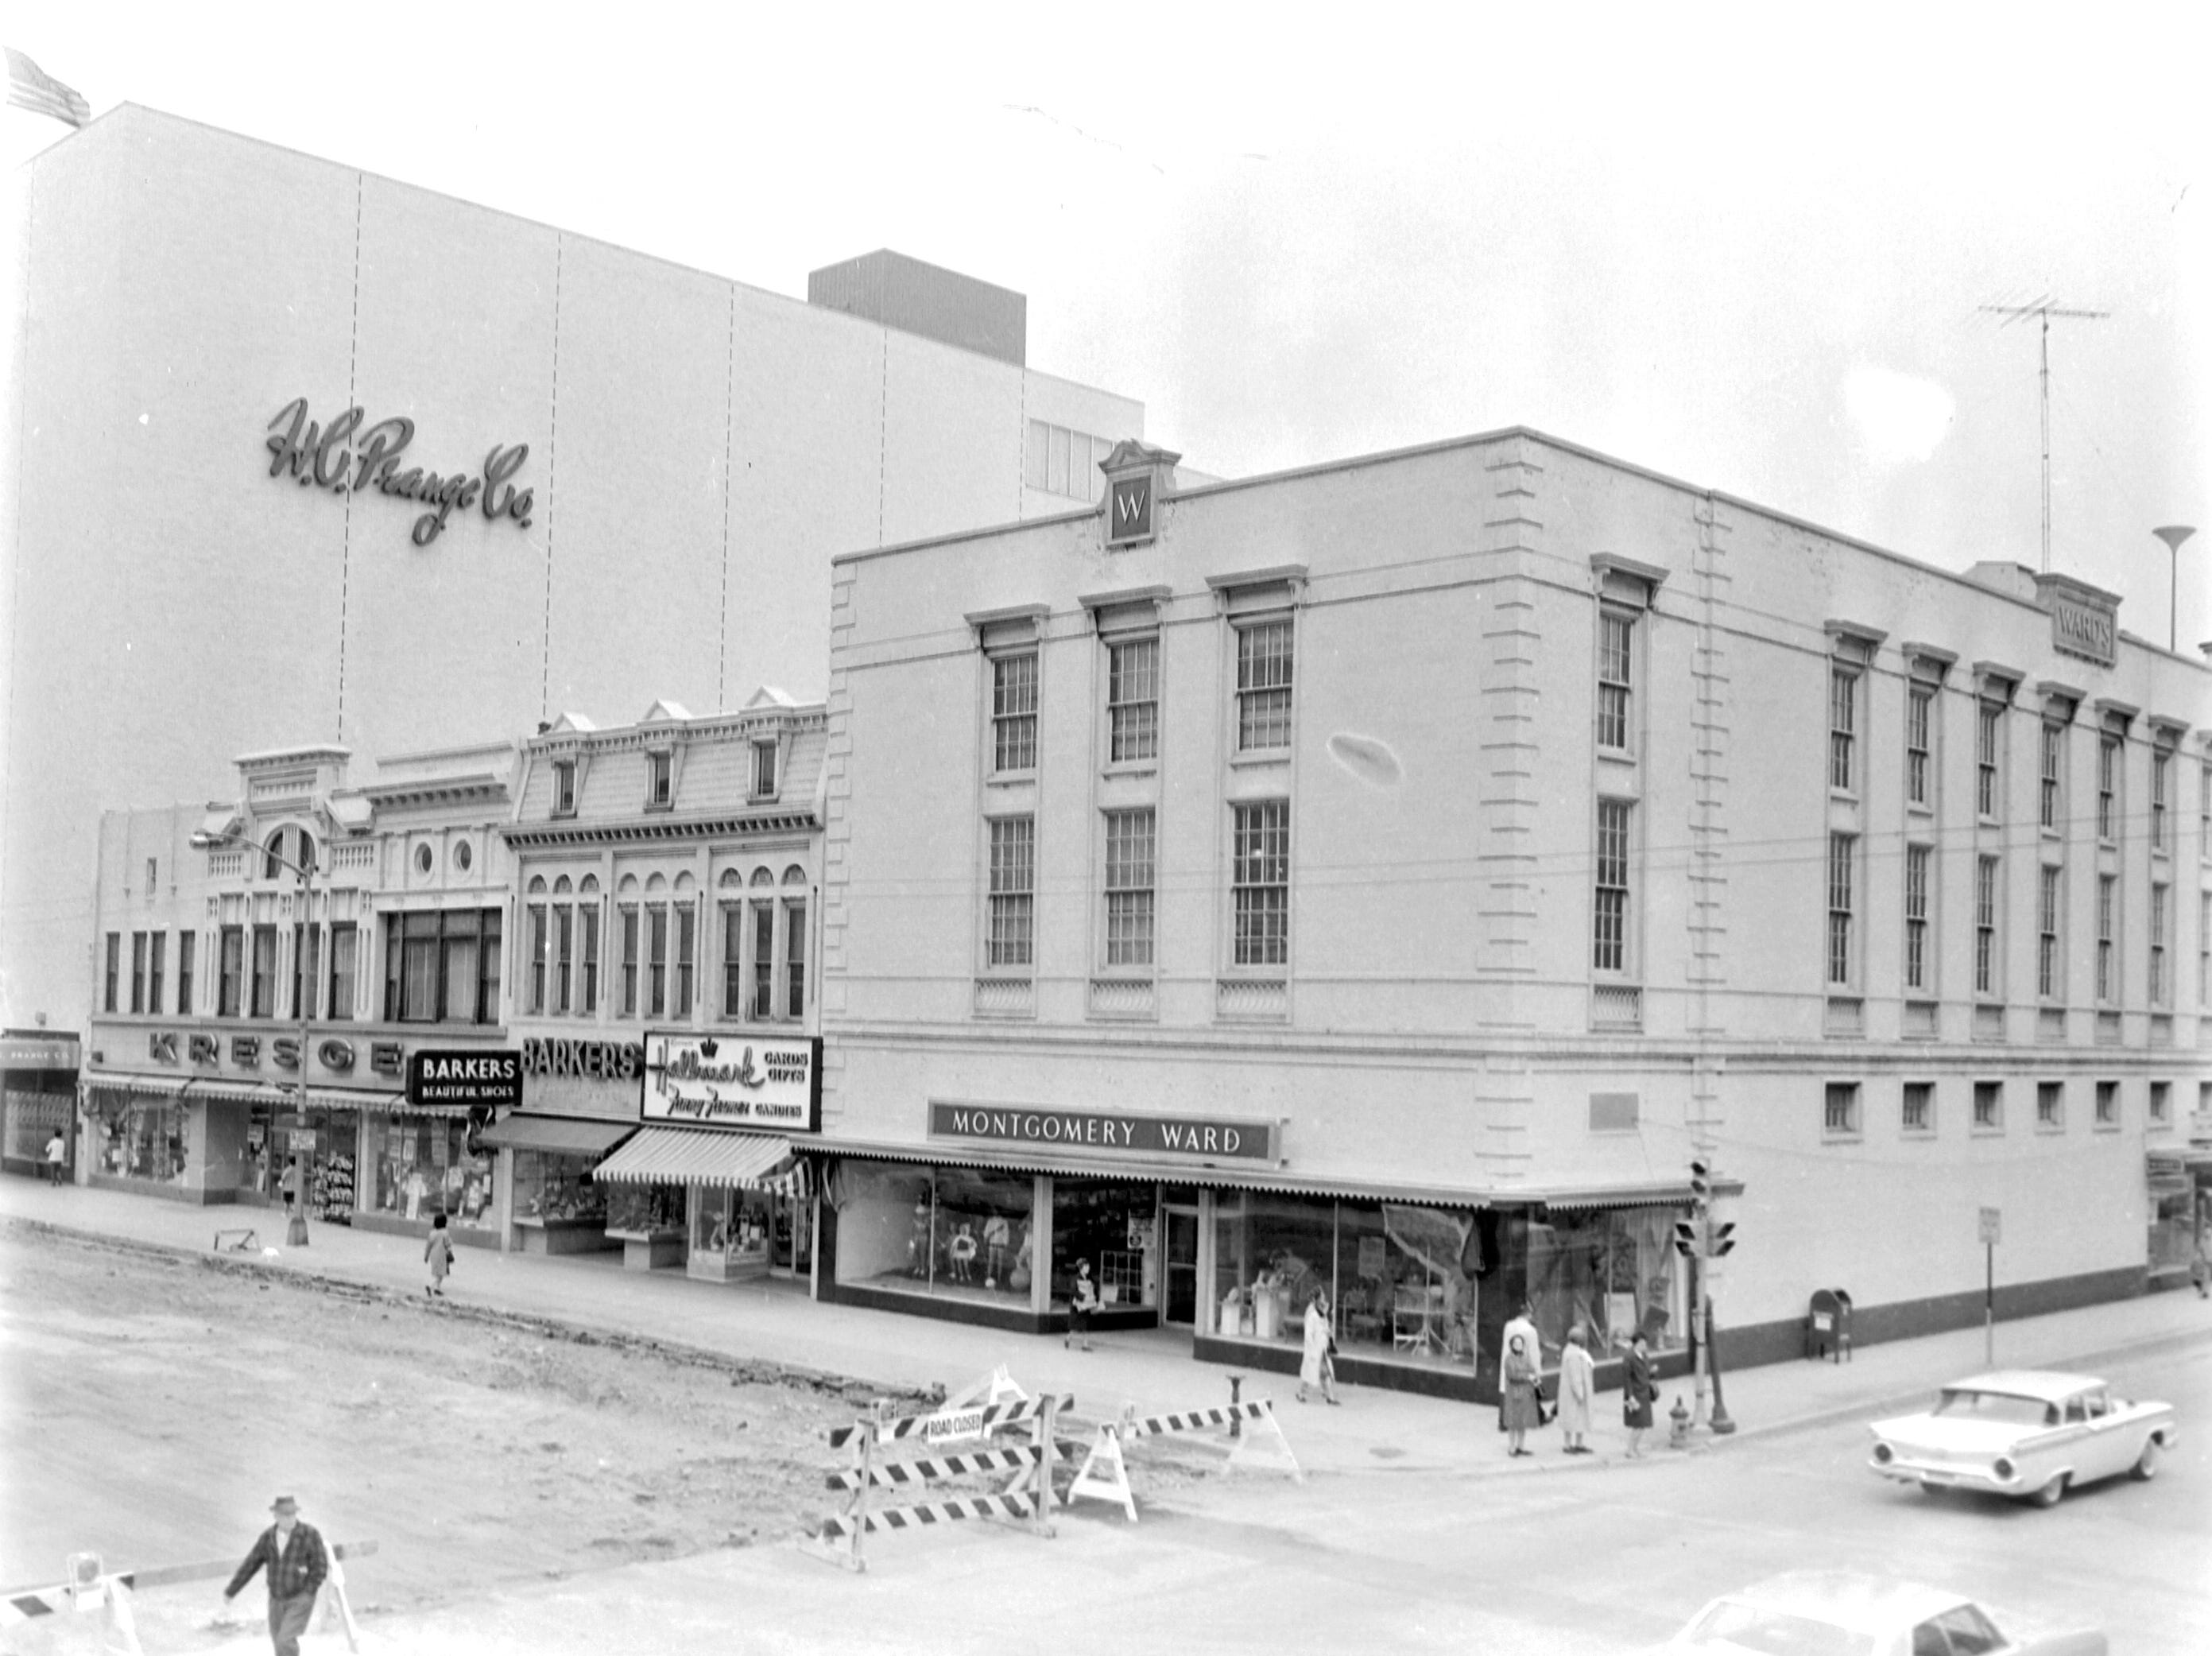 1957 Downtown Appleton. 100 West block on the north side of College Avenue:  H. C. Prange. Co. Kresge's. Barker's . Fanny Farmer. Mongomery Ward. Post-Crescent photo by staff.